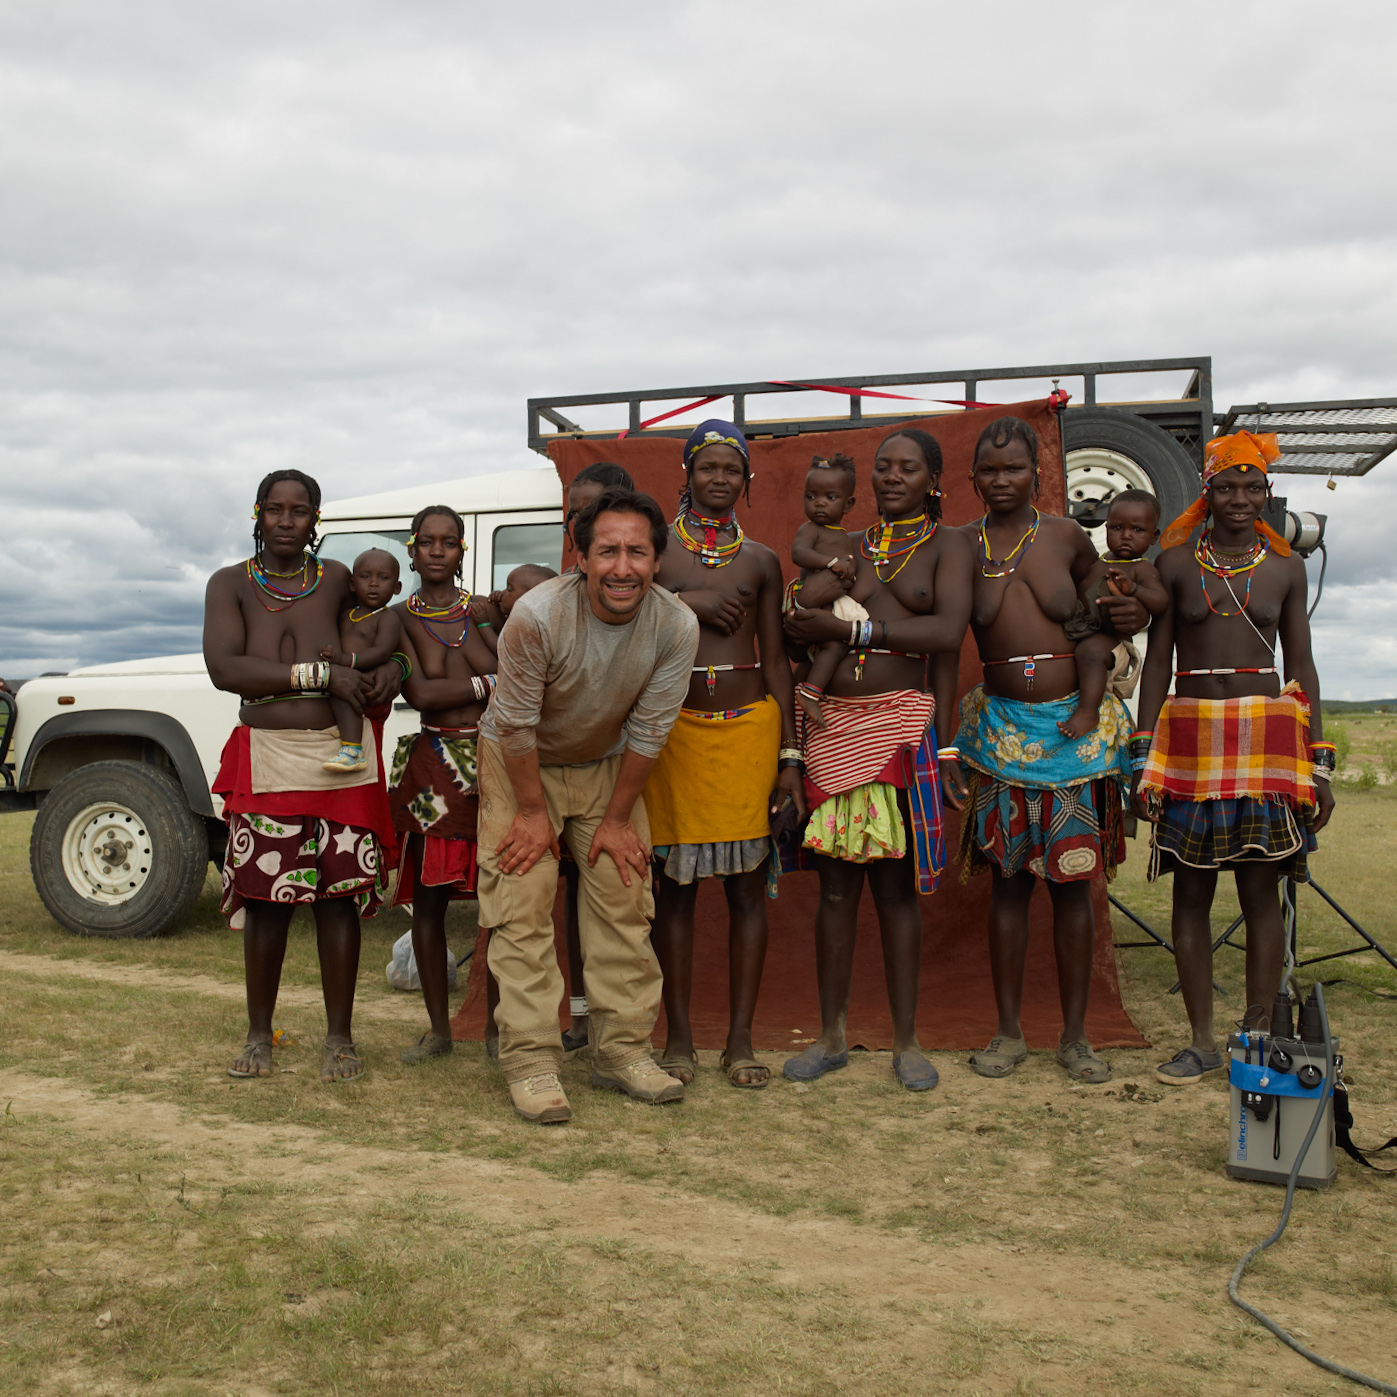 Jaime Ocampo-Rangel with the Himba of Namibia